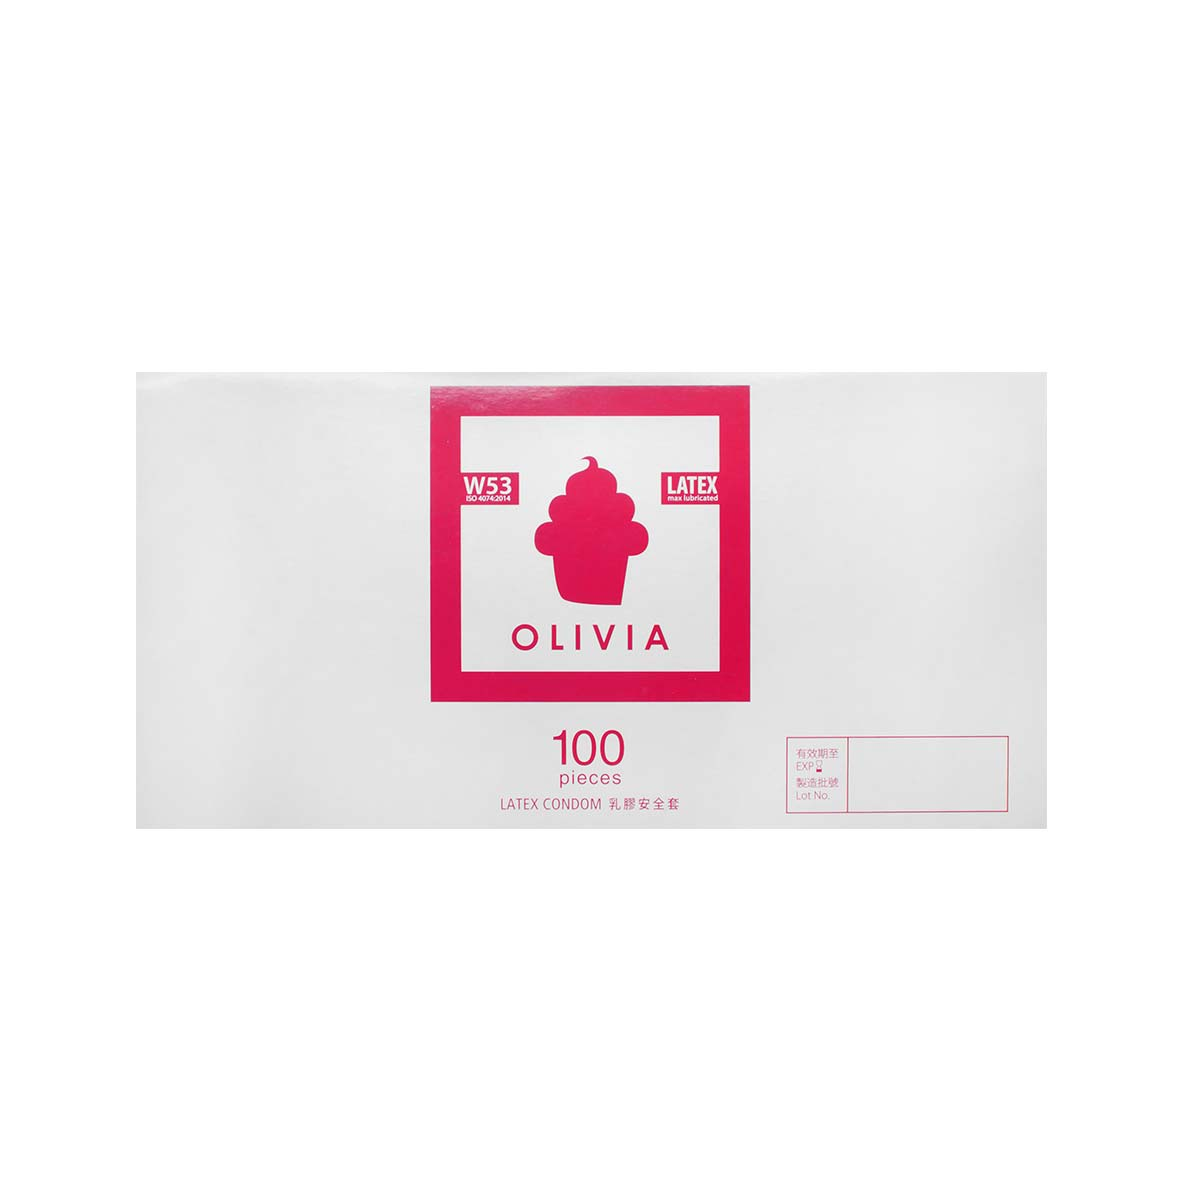 Olivia W53 max-lubricated 100 pieces bulk pack Latex Condom